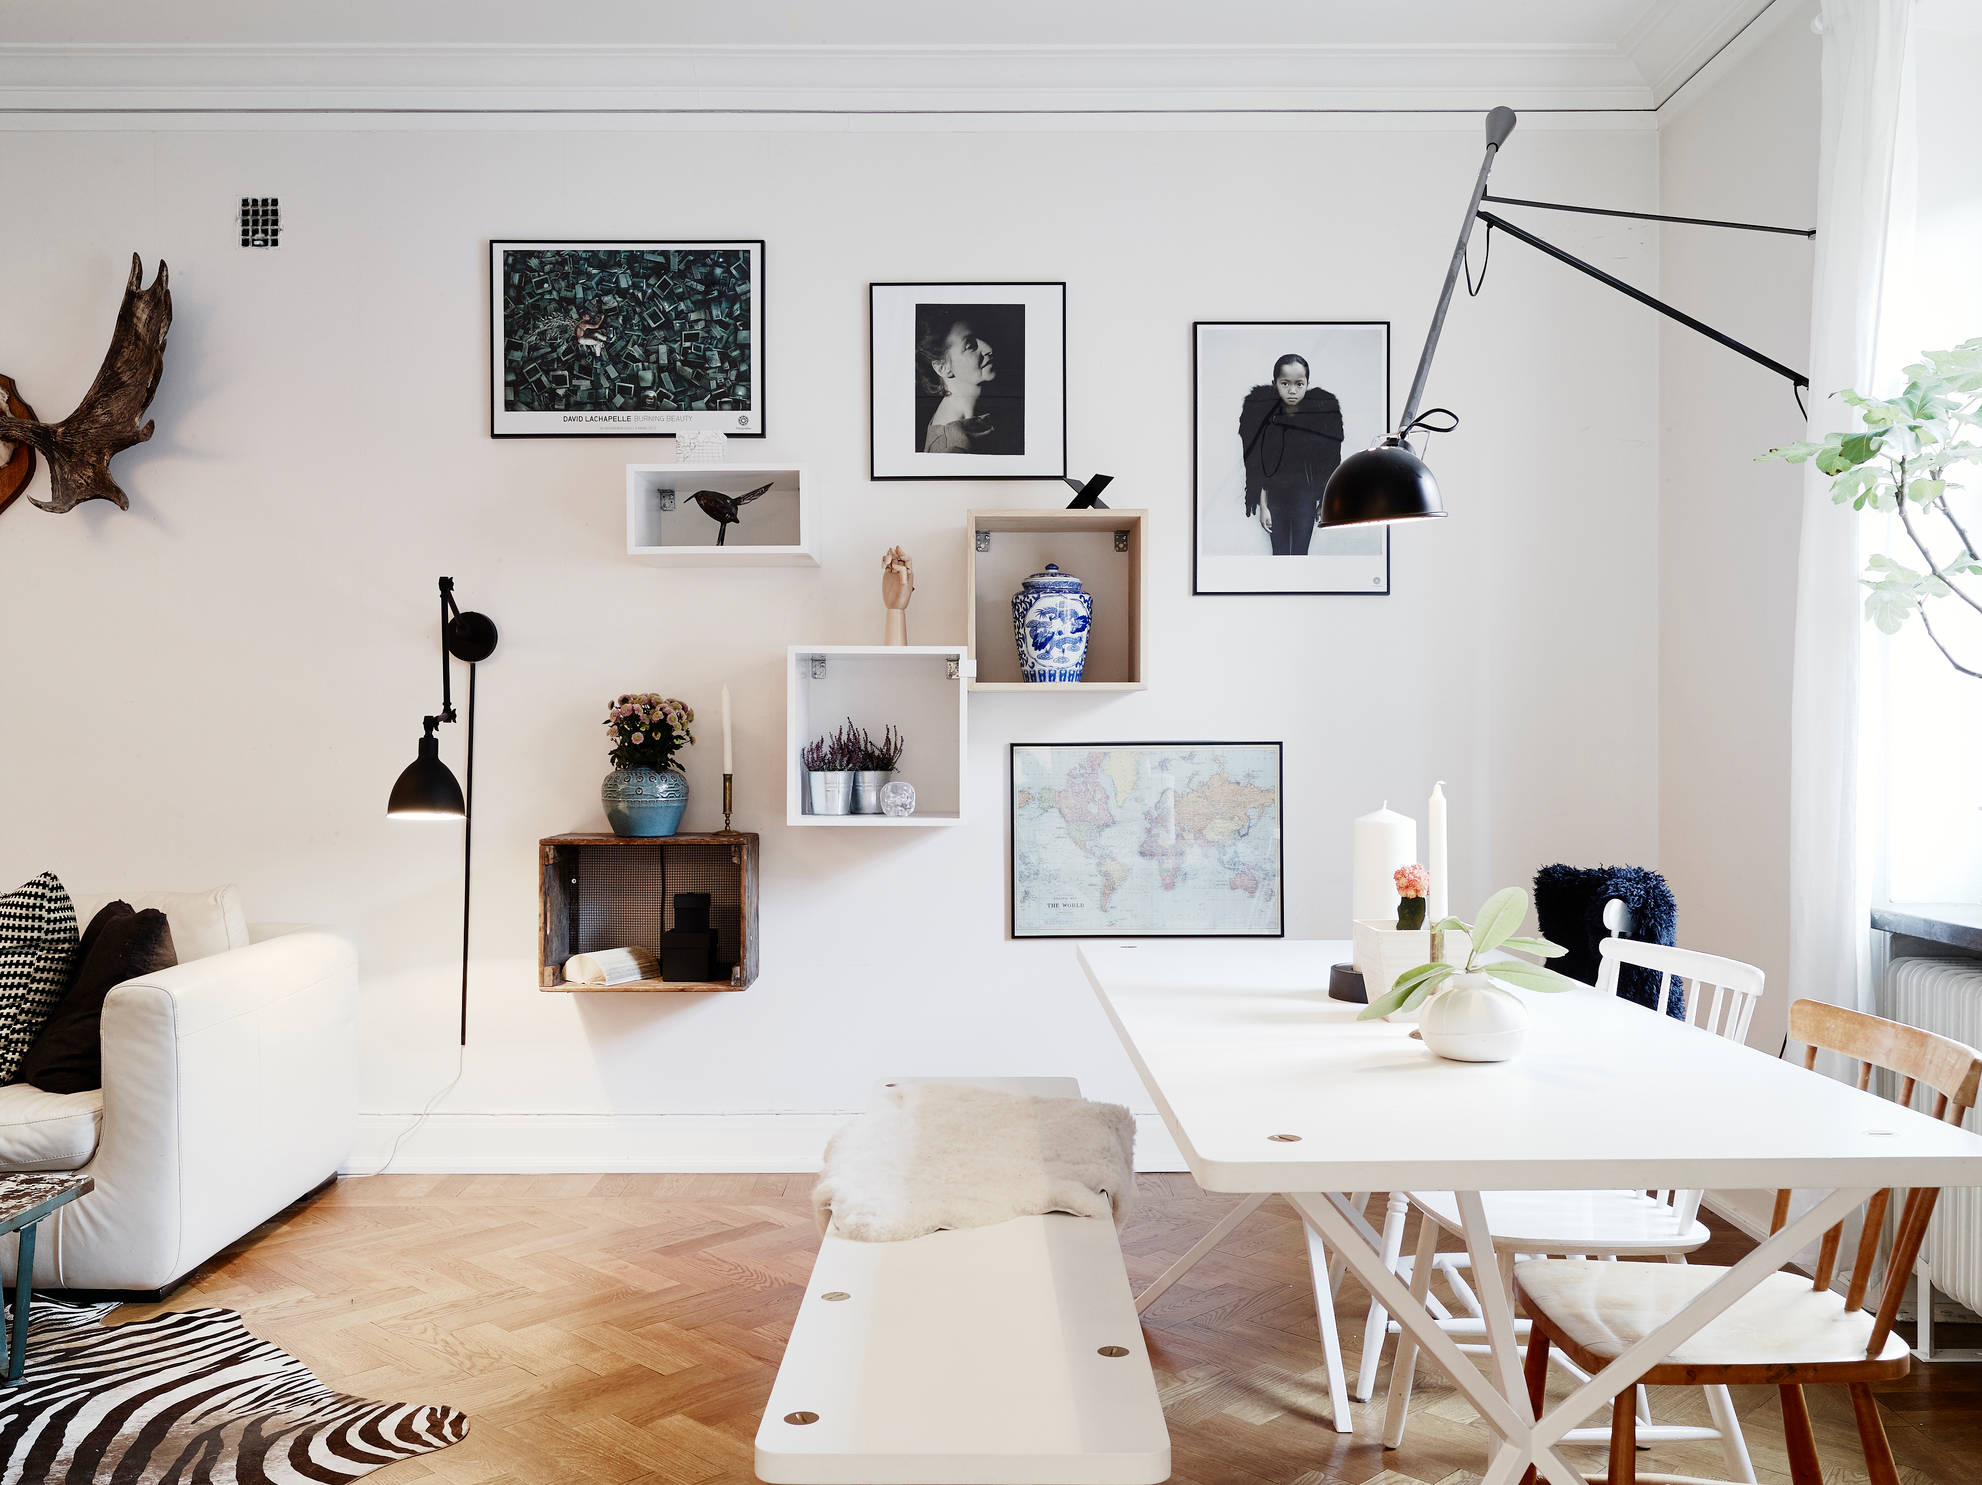 Living room with different angles and lines coco lapine - Comment decorer un mur avec des cadres ...